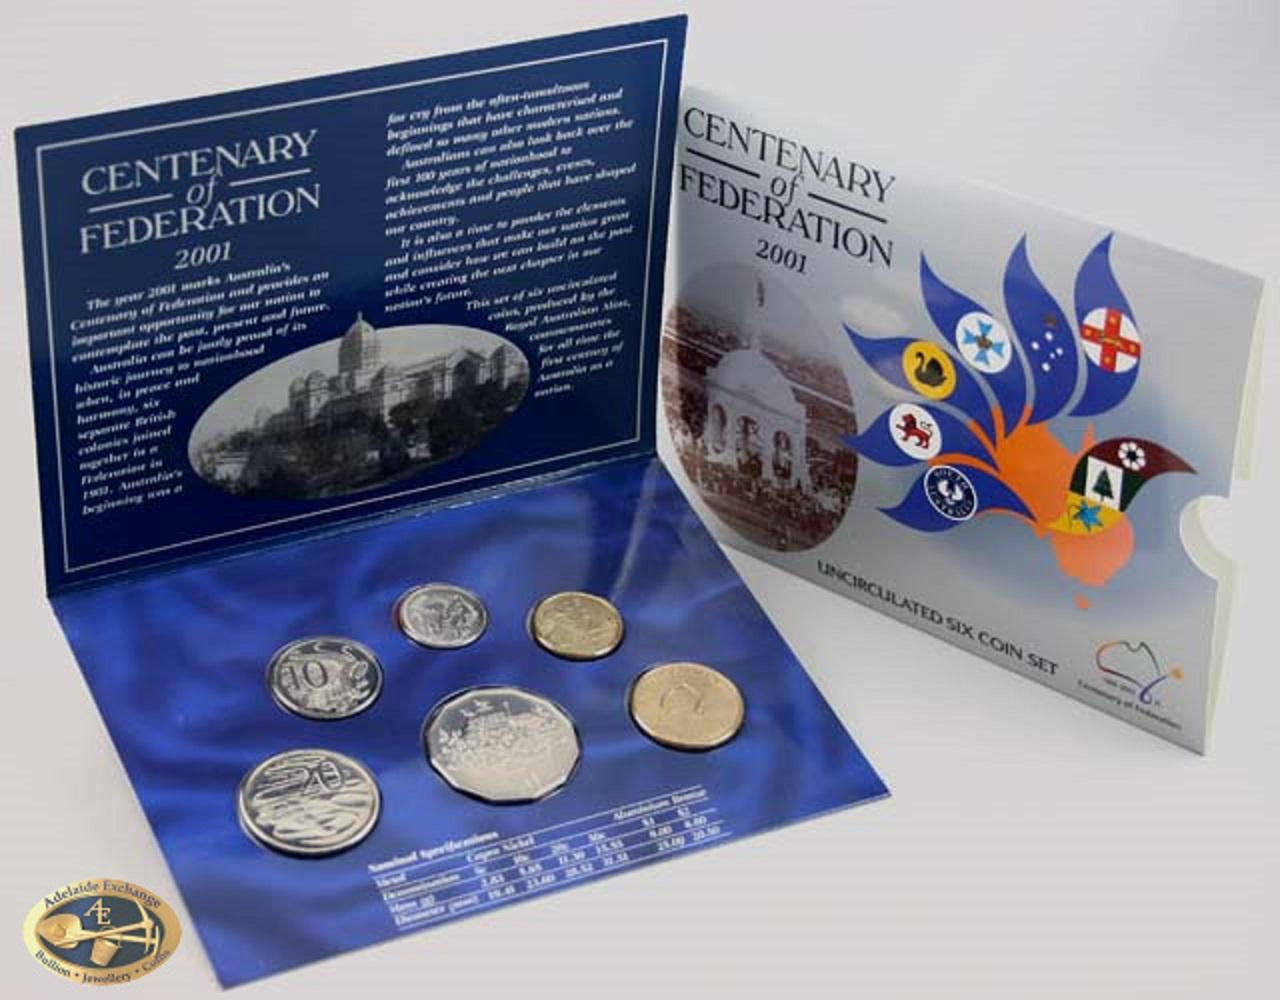 2001 Uncirculated Coin Set Adelaide Exchange